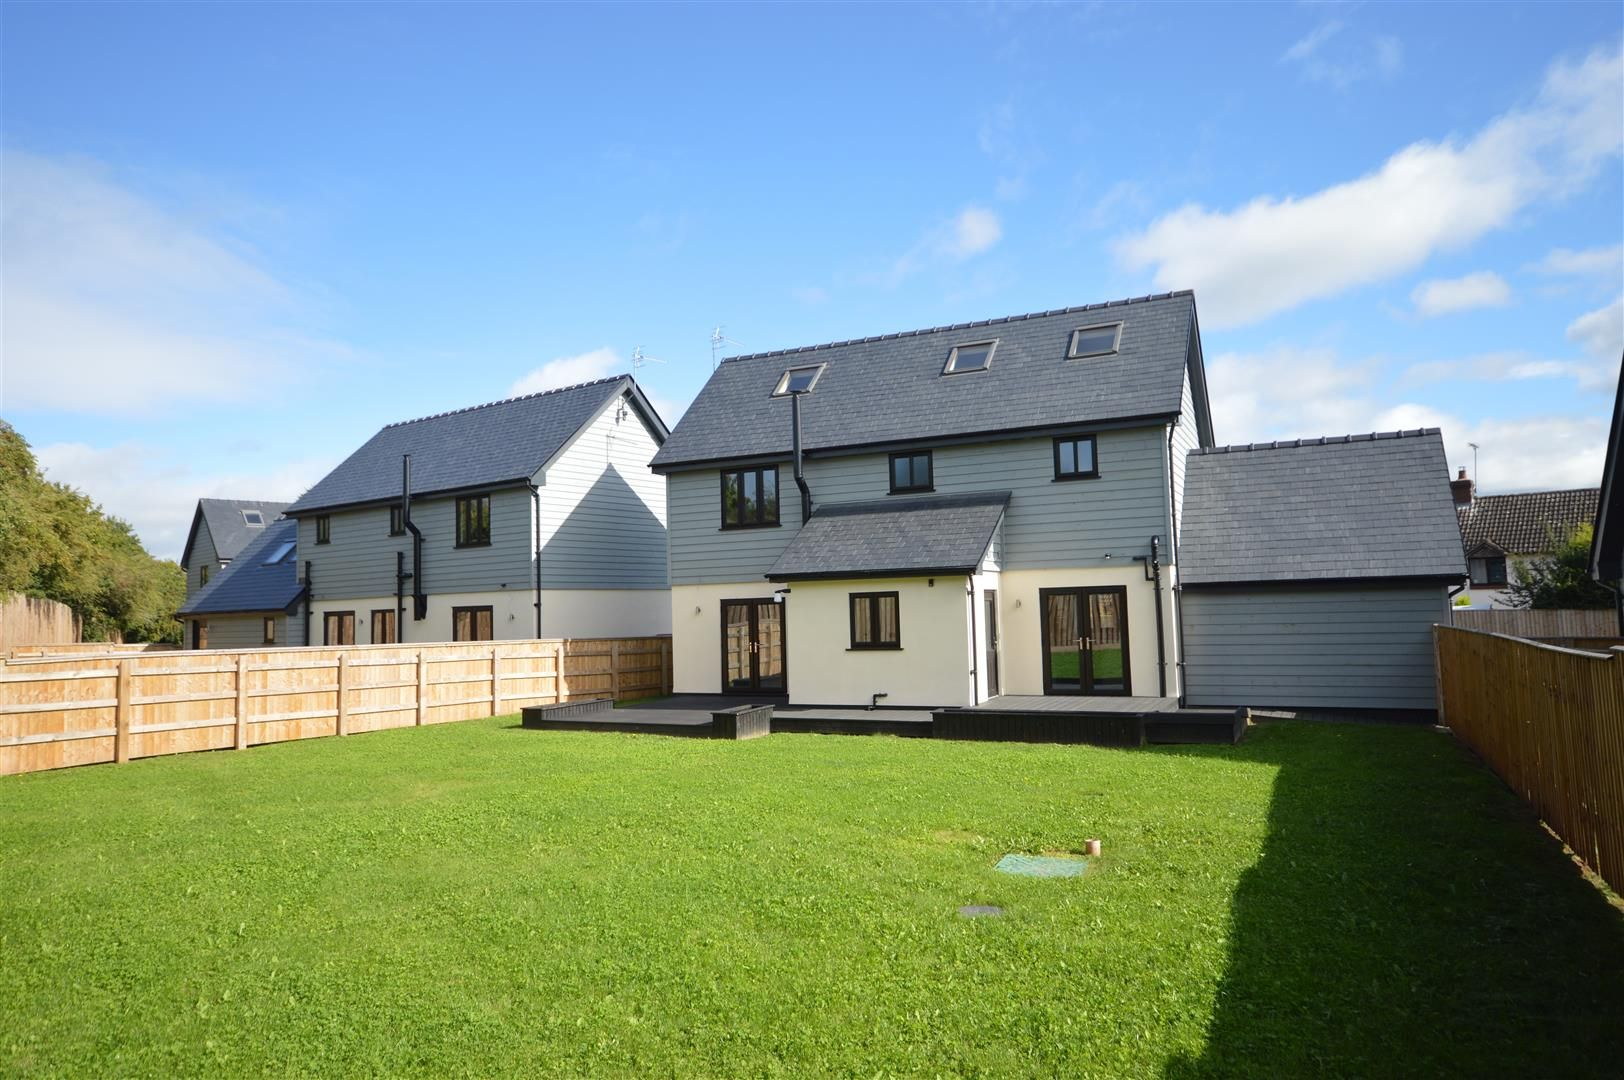 4 bed detached for sale in Brimfield  - Property Image 2